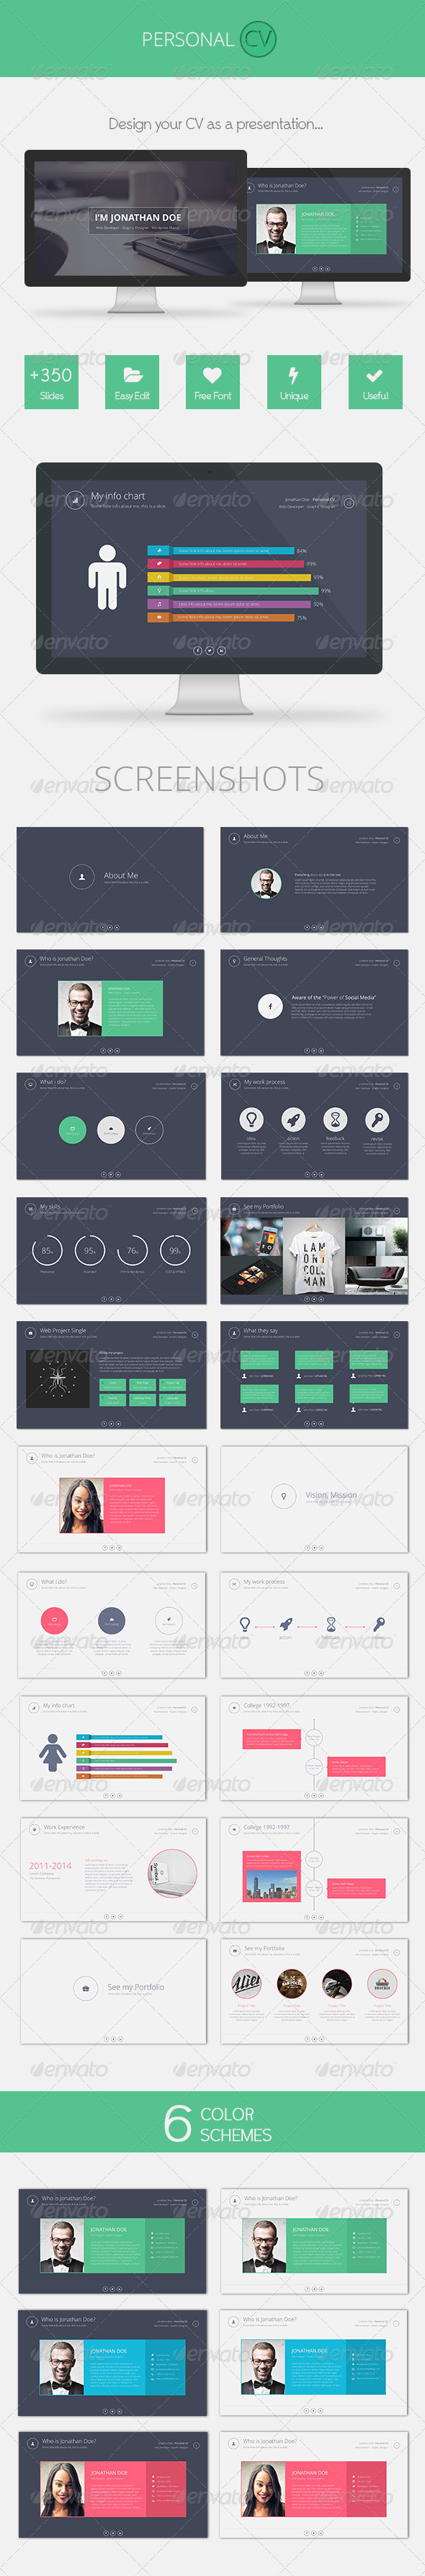 GraphicRiver Personal CV Powerpoint 7966528